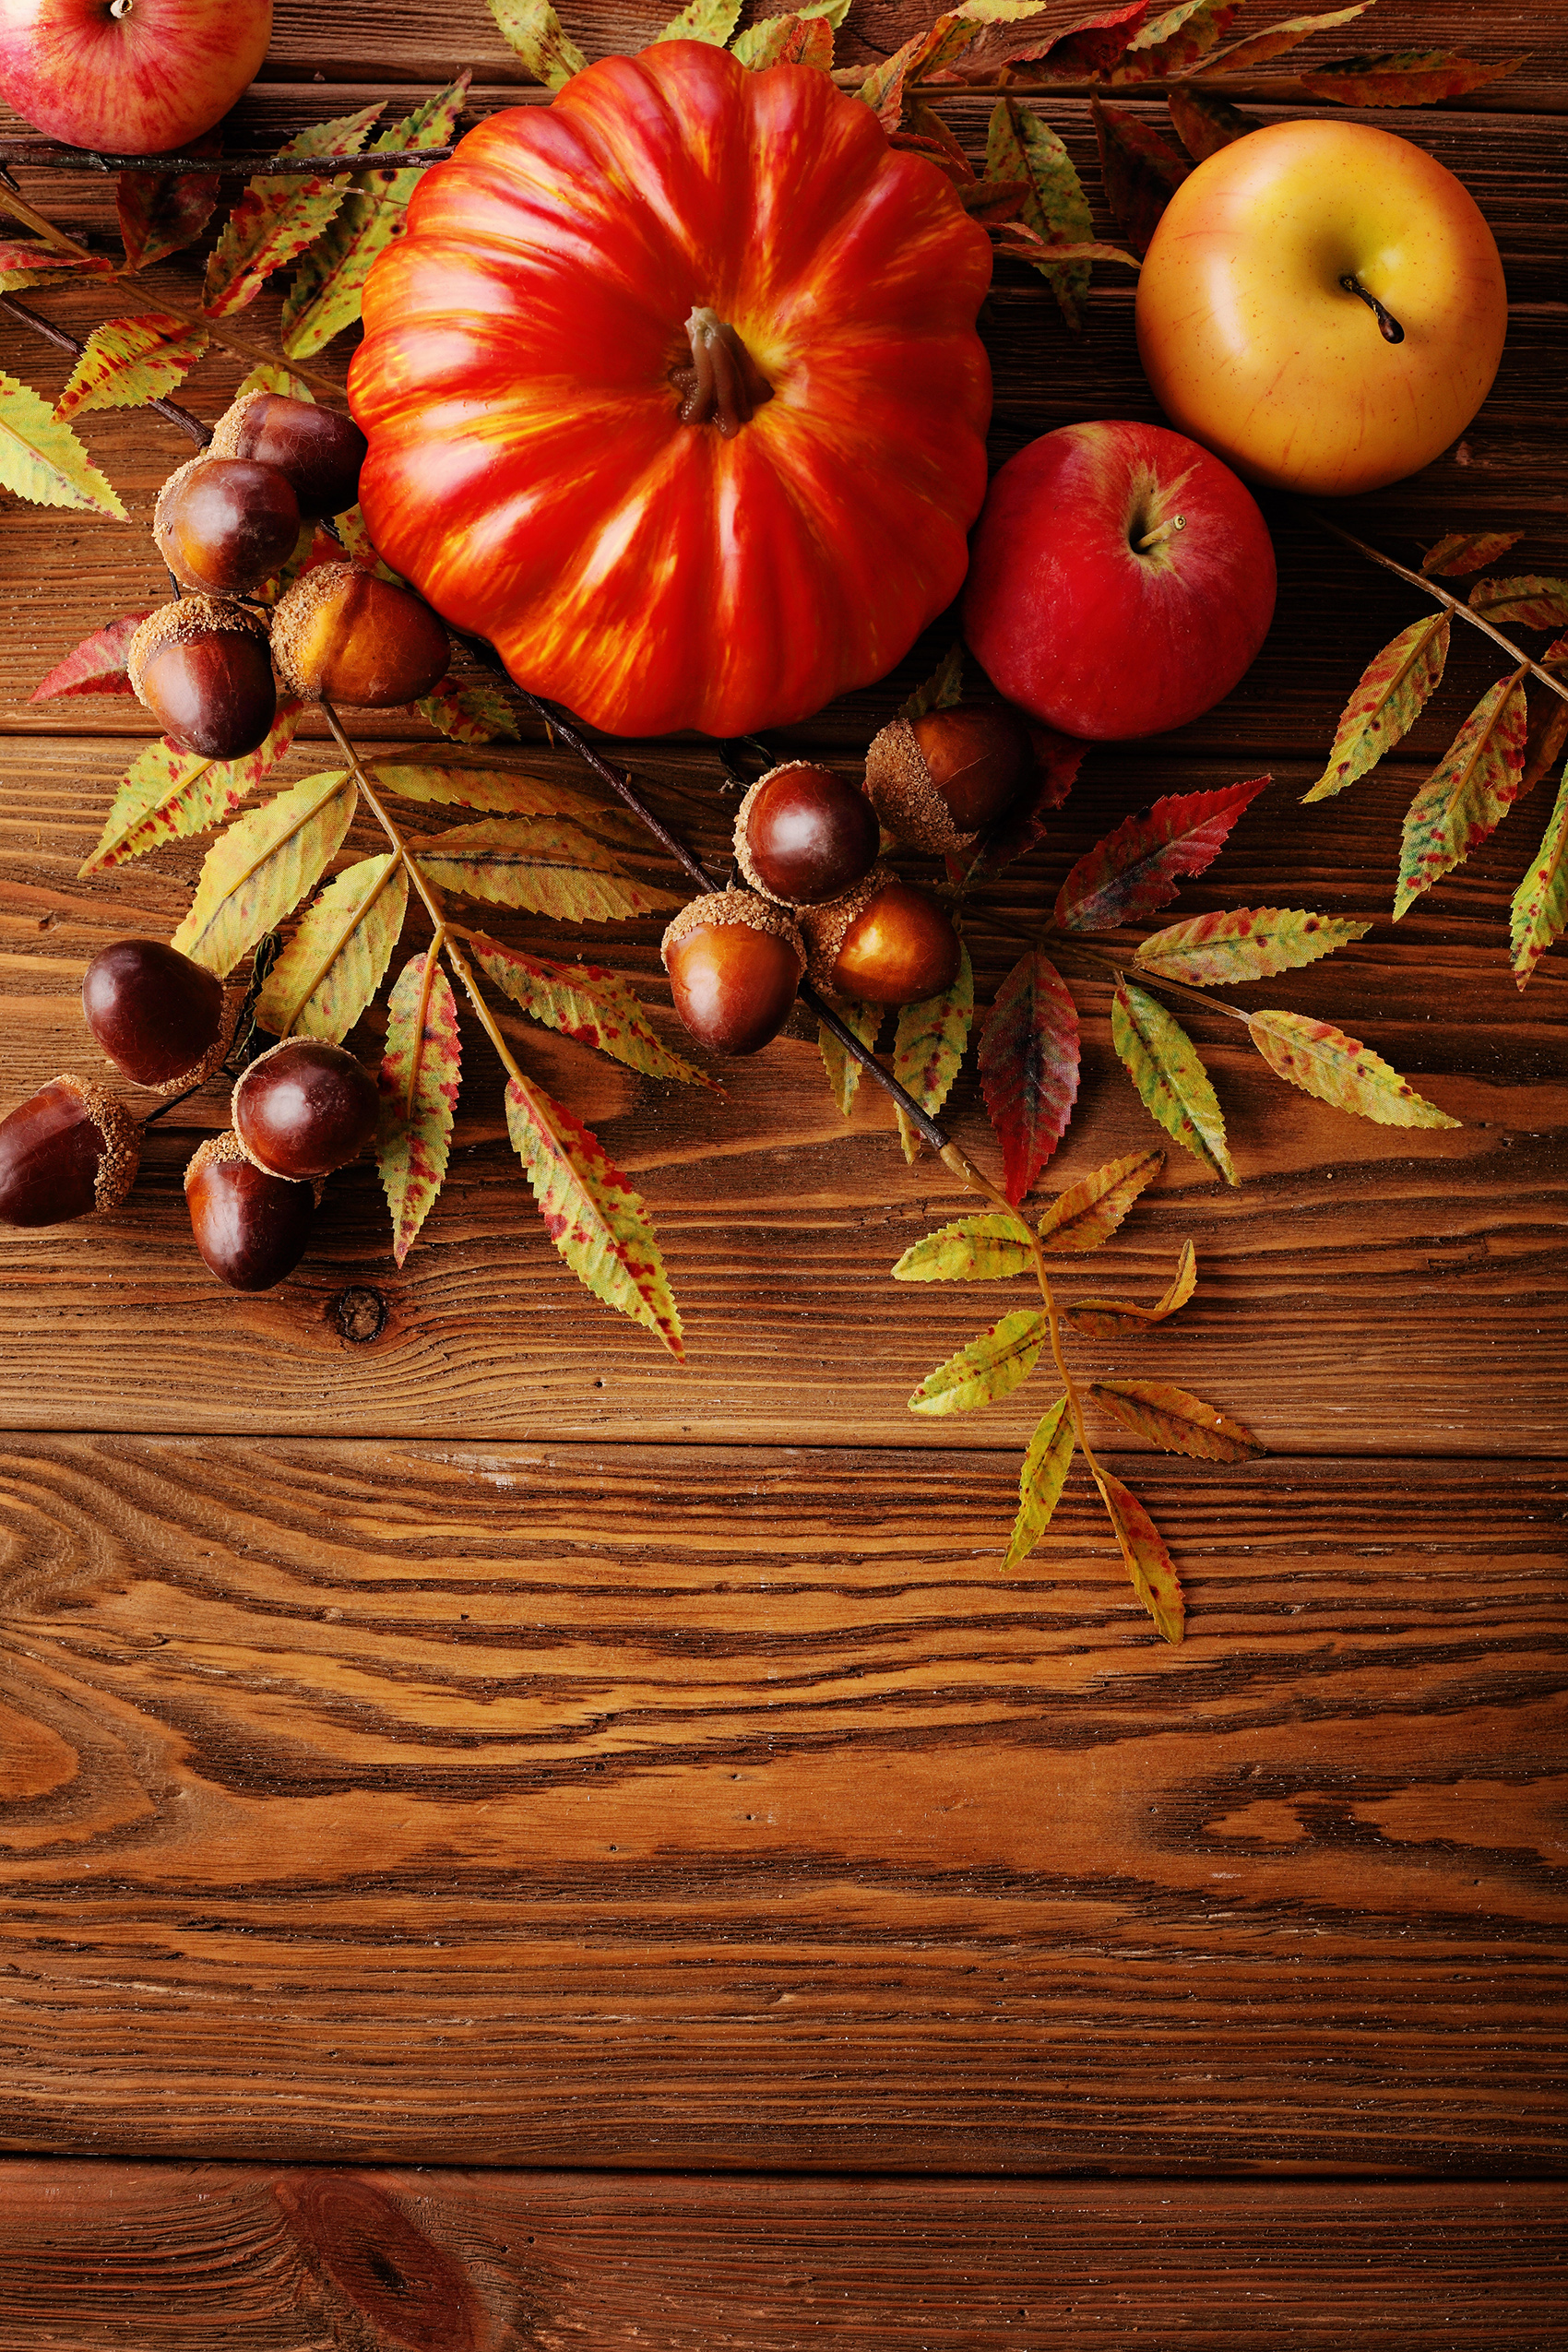 Pumpkins and apples on the Board 53746